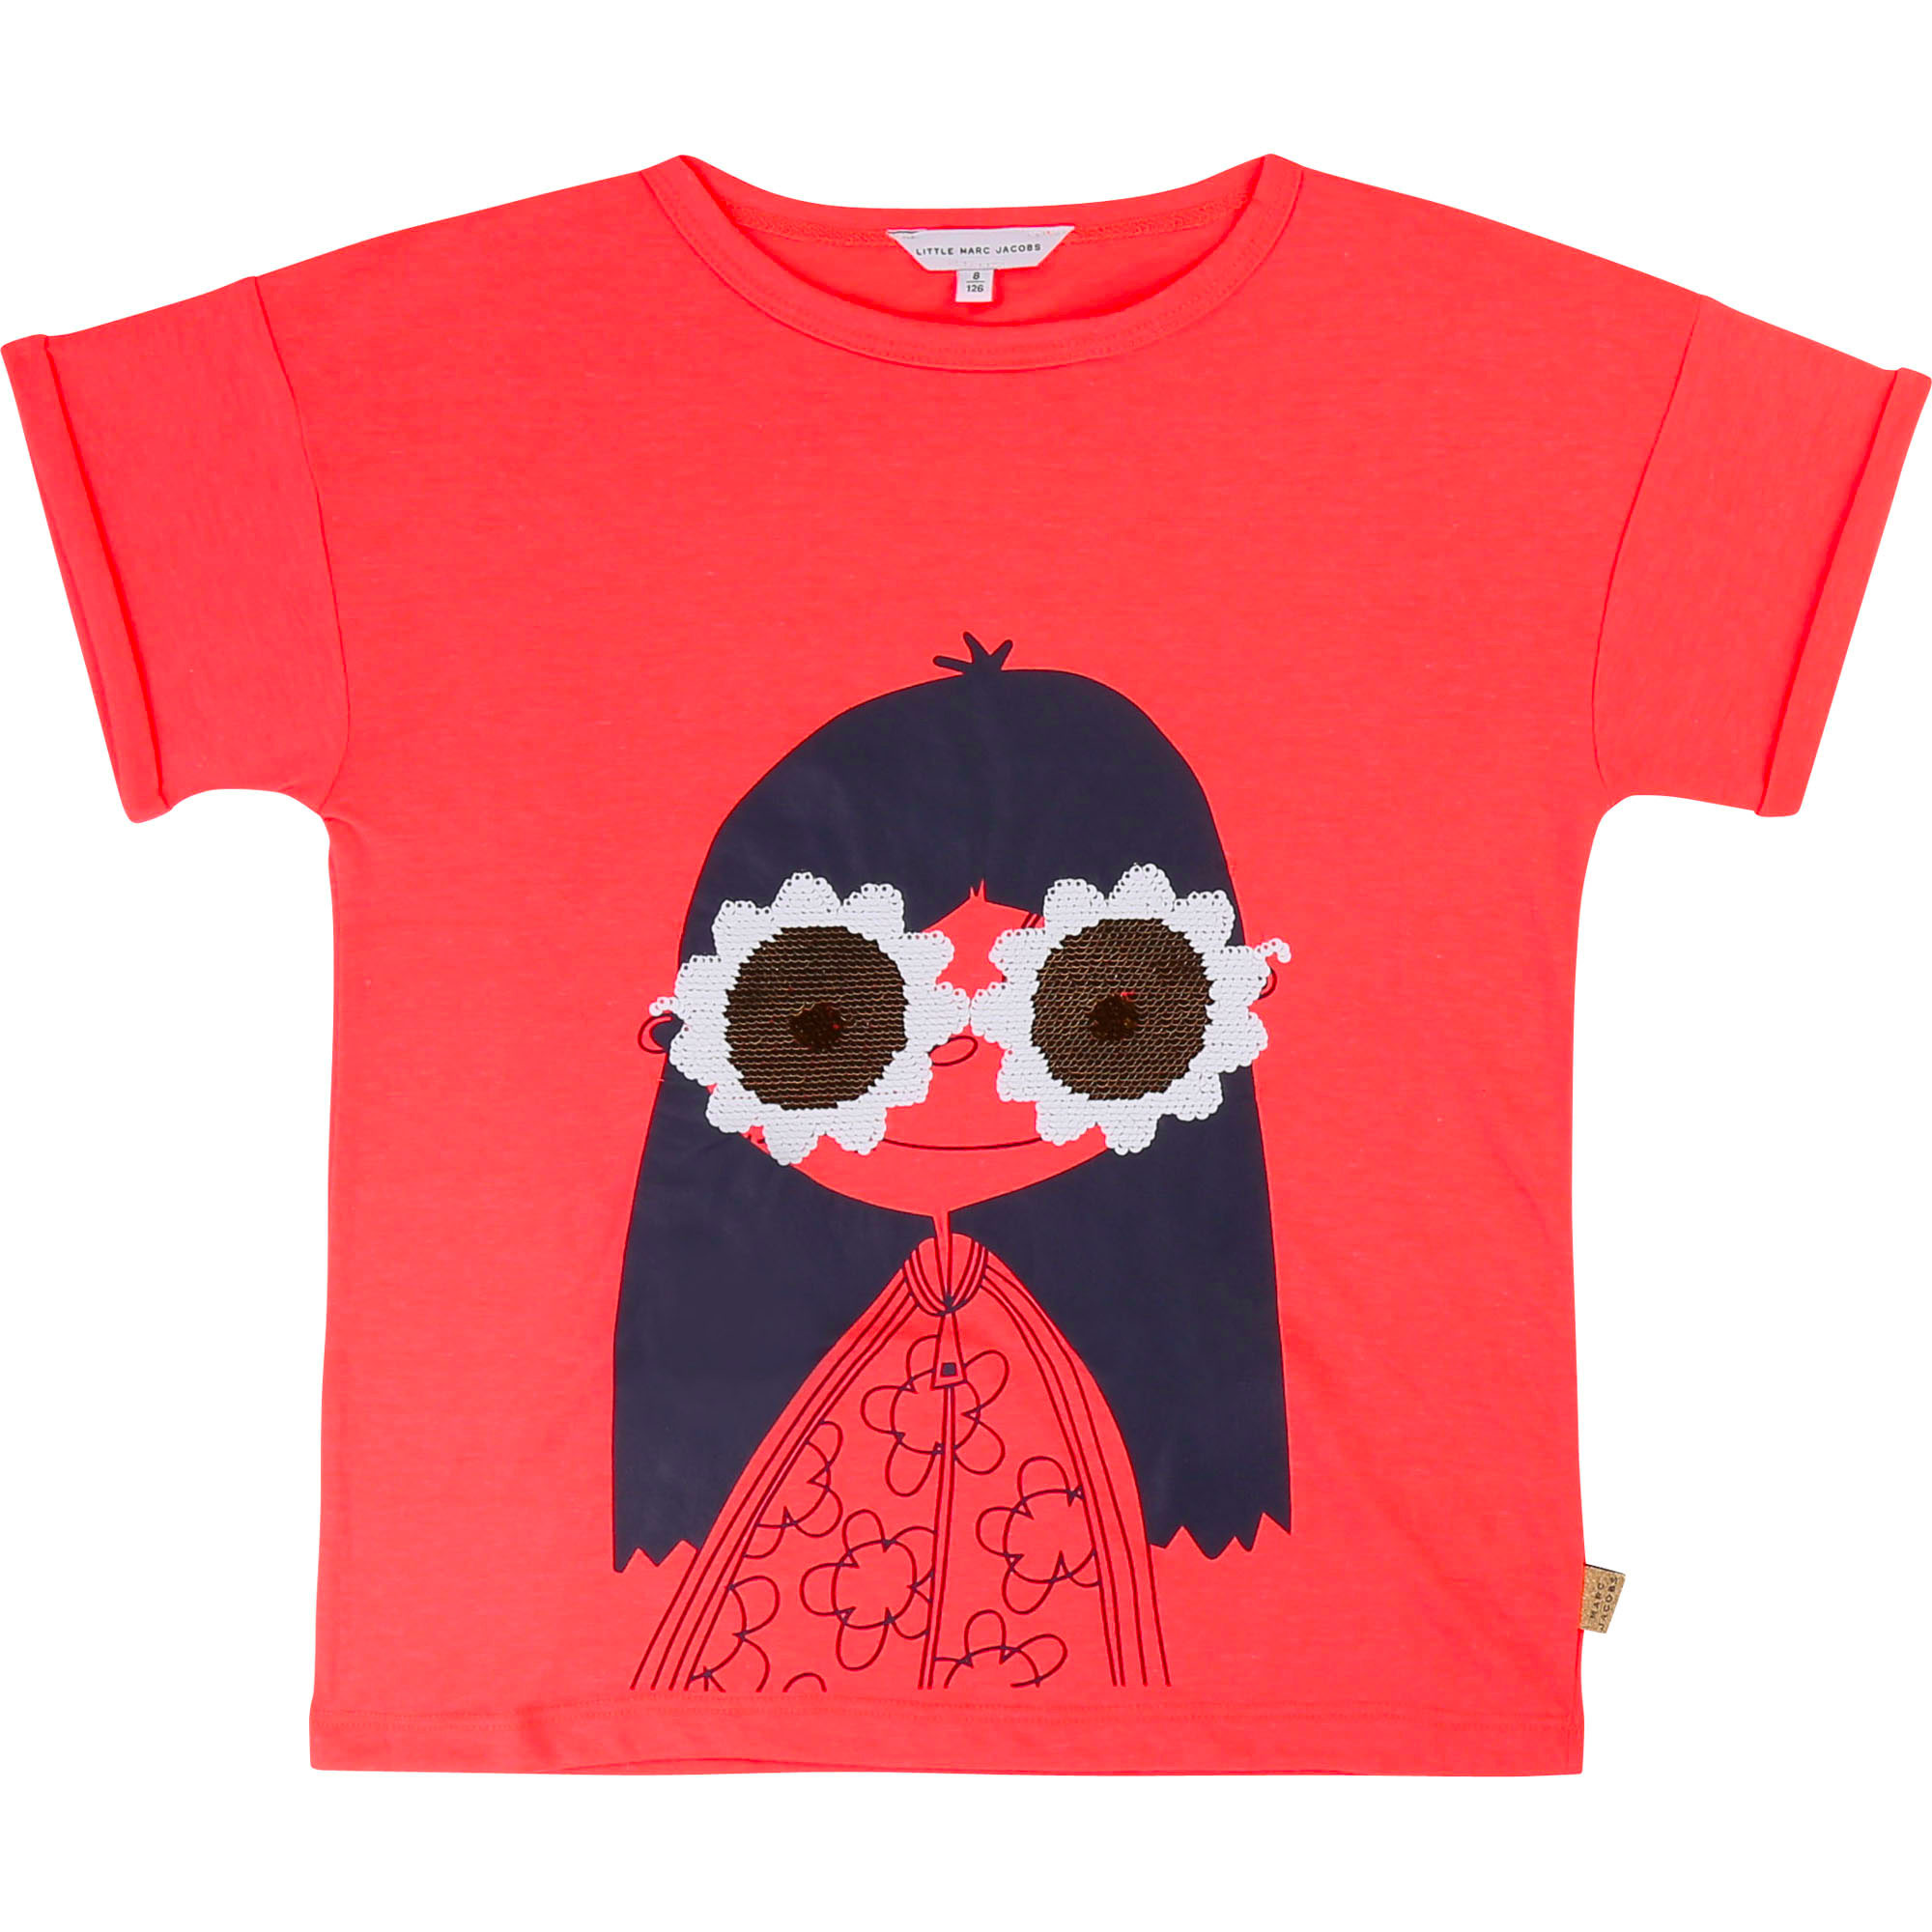 Sequin glasses T-shirt LITTLE MARC JACOBS for GIRL